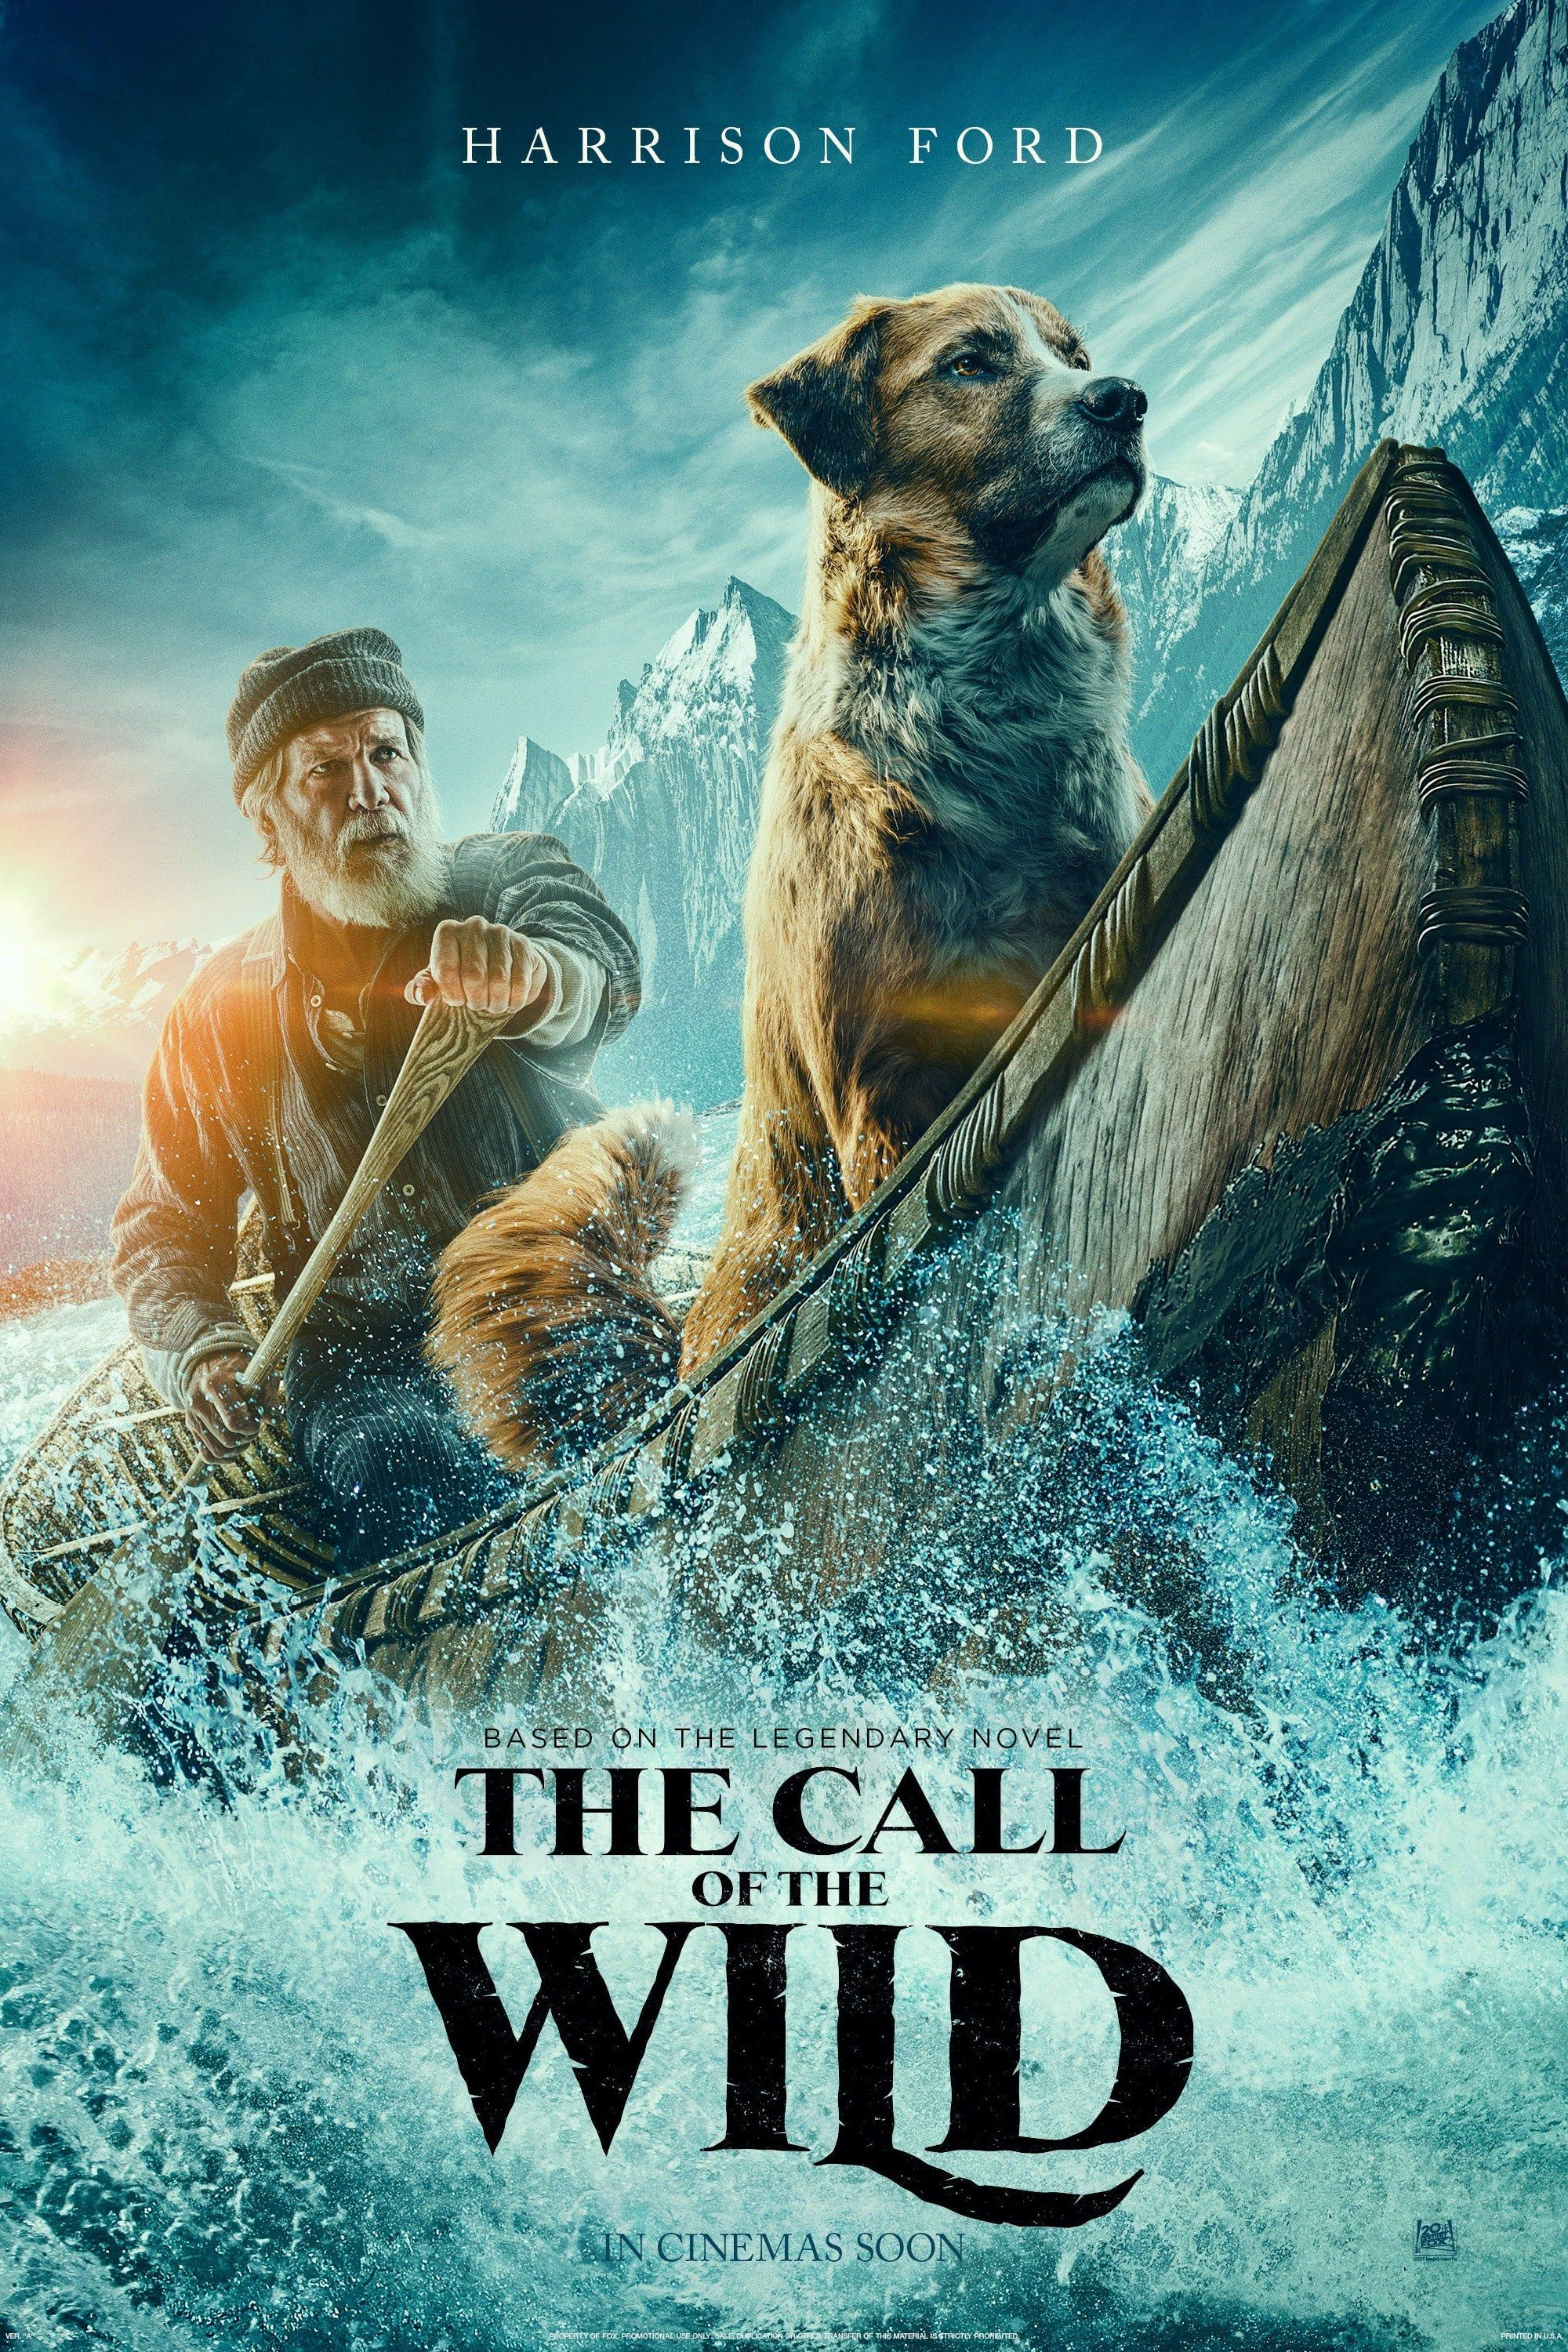 The Call Of The Wild Fullfore Film Og Dubbed Hd Hd 2020 Wild